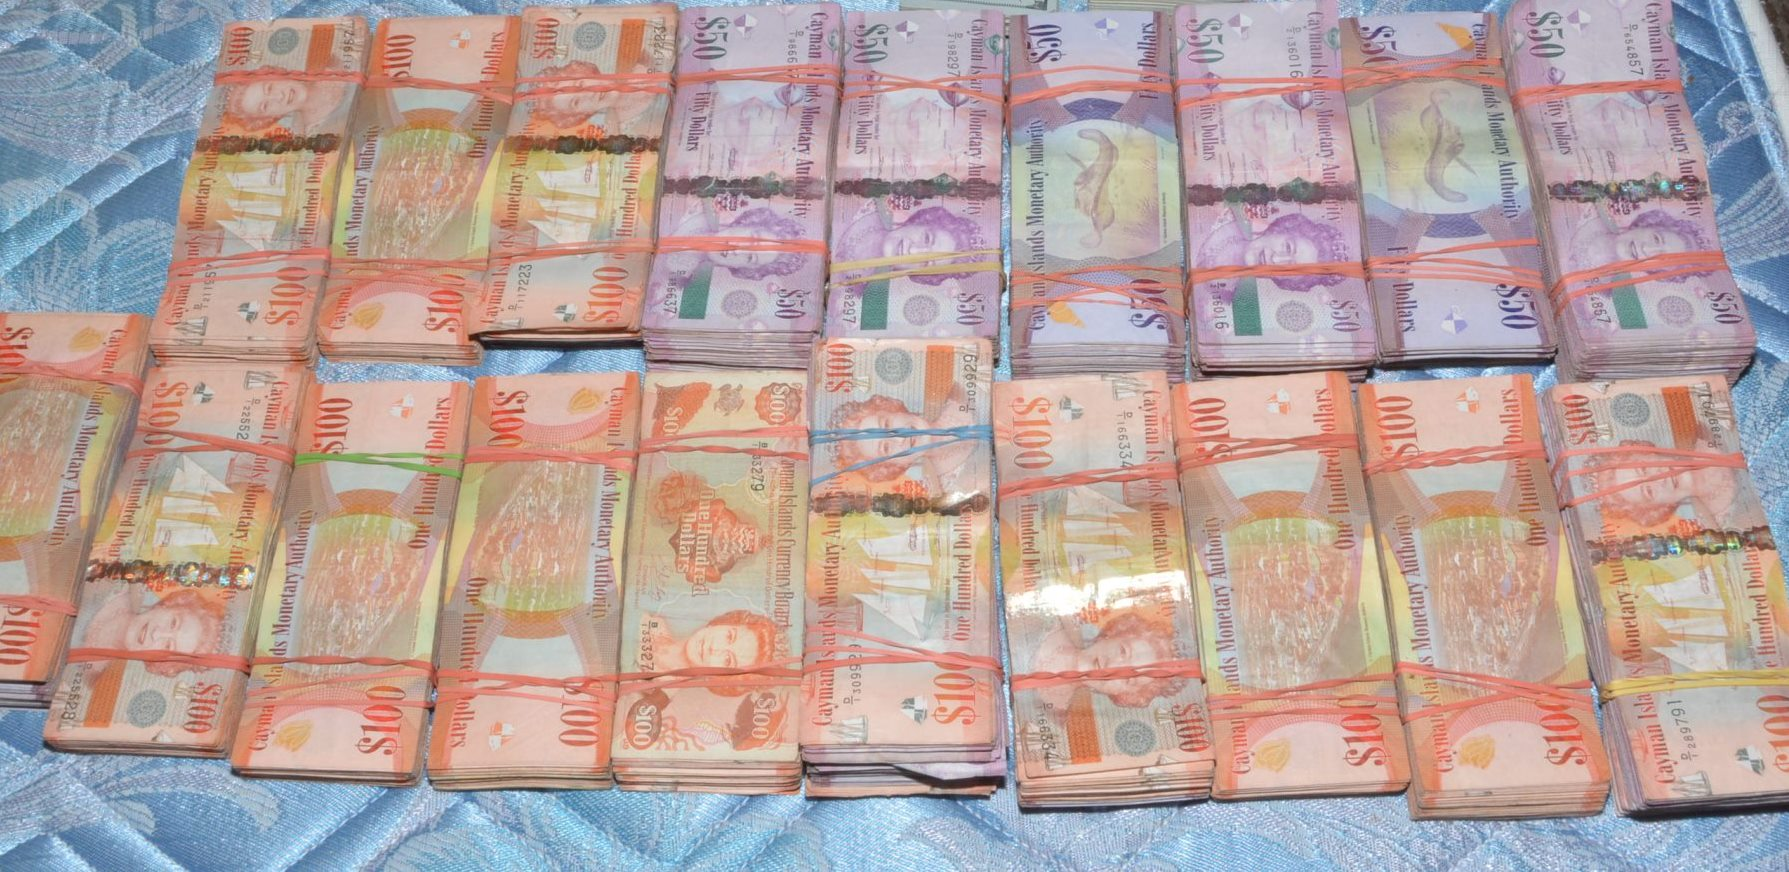 A significant amount of cash was found at the location.